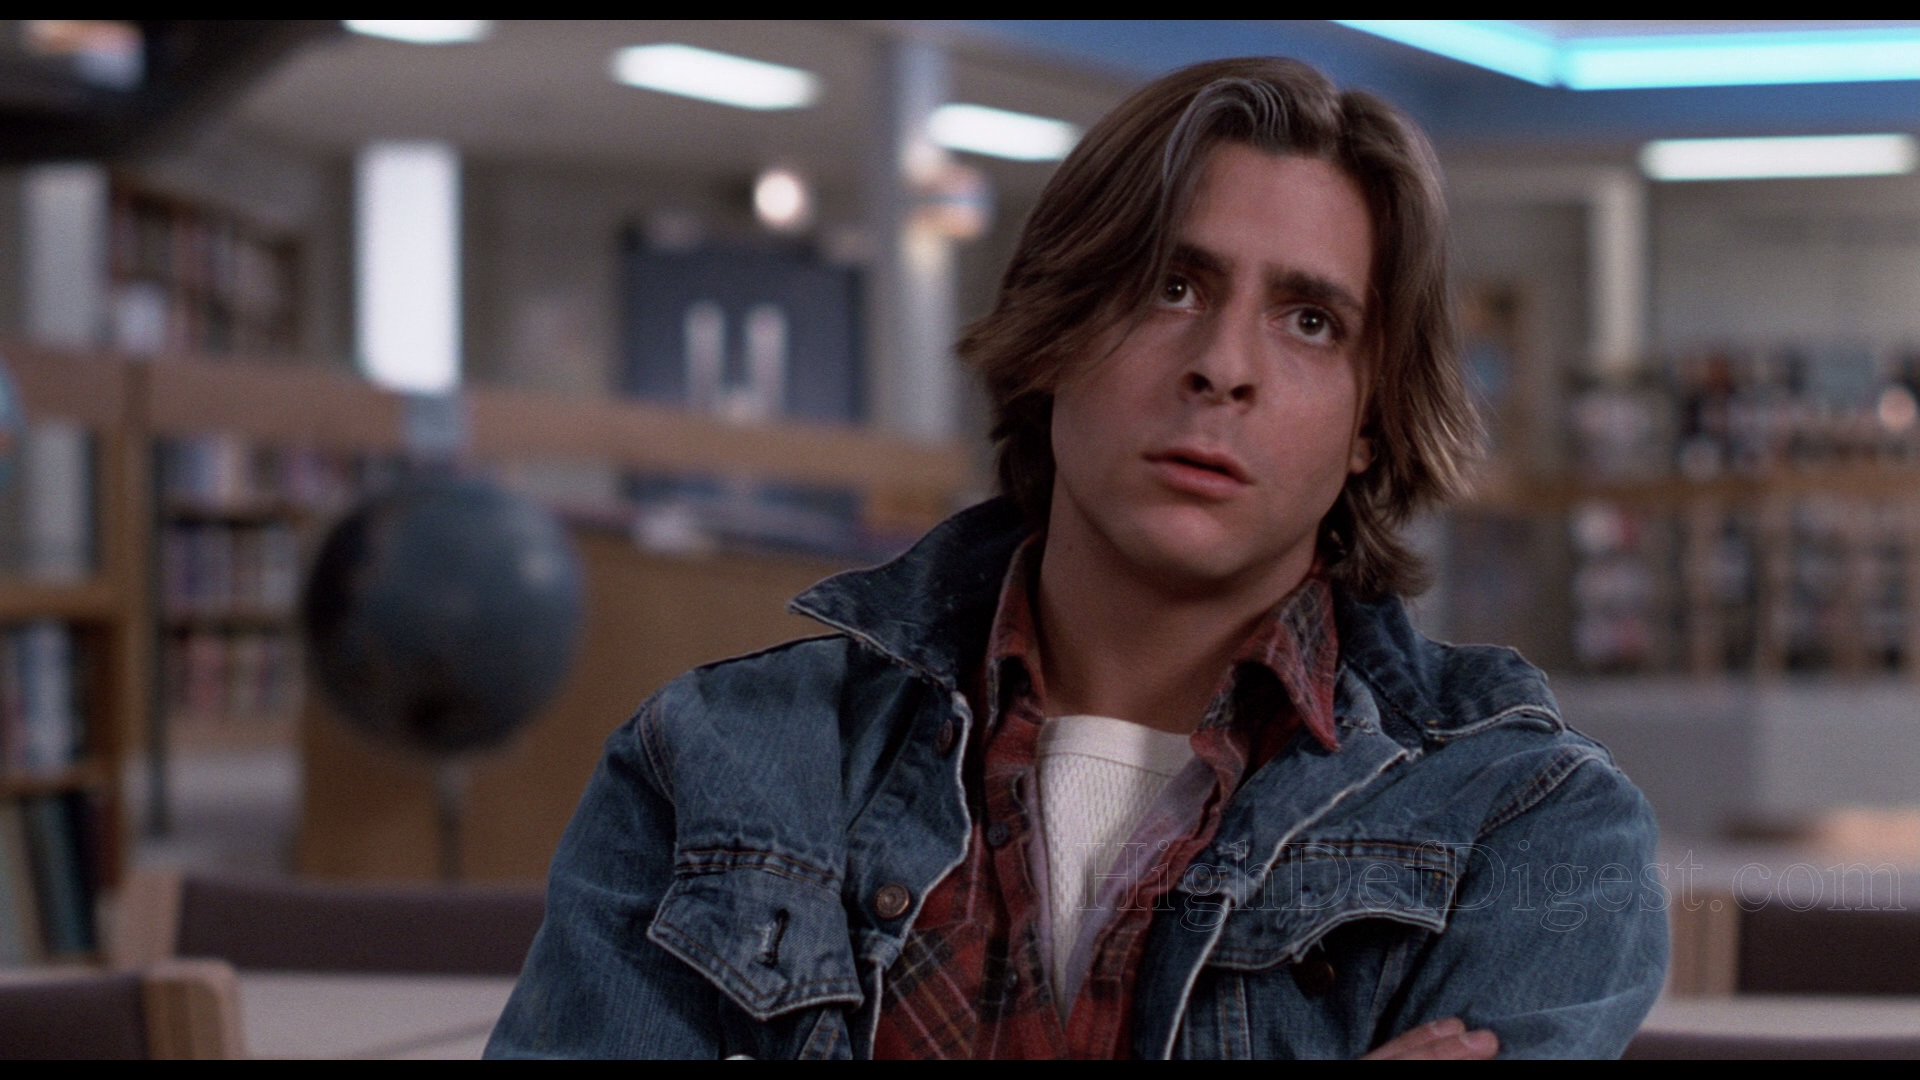 the breakfast club John bender is one of the main characters in the the breakfast club, serving as the anti-herokeeping with the film's theme of acceptance of oneself and of others, bender learns that being kind isn't necessarily a bad thing yet he comes off as the tough guy who couldn't care less, and no one really knows him at all.